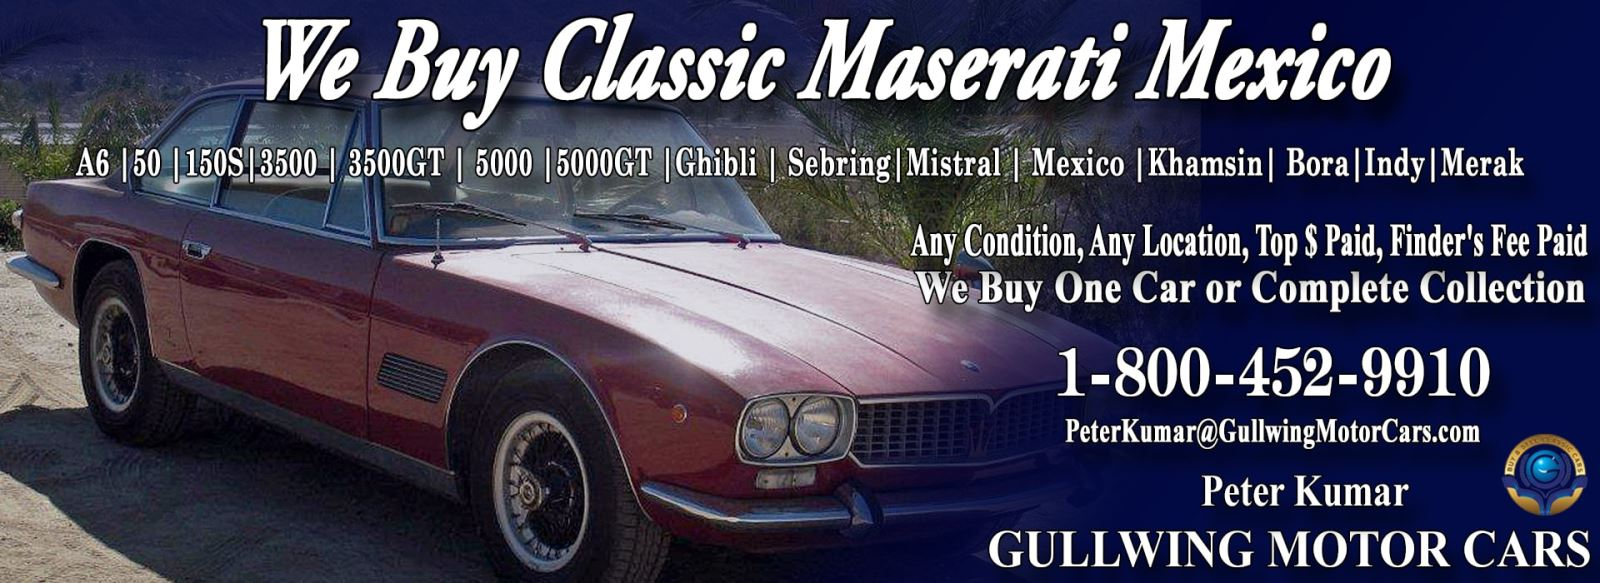 Classic Maserati Mexico for sale, we buy vintage Maserati Mexico. Call Peter Kumar. Gullwing Motor